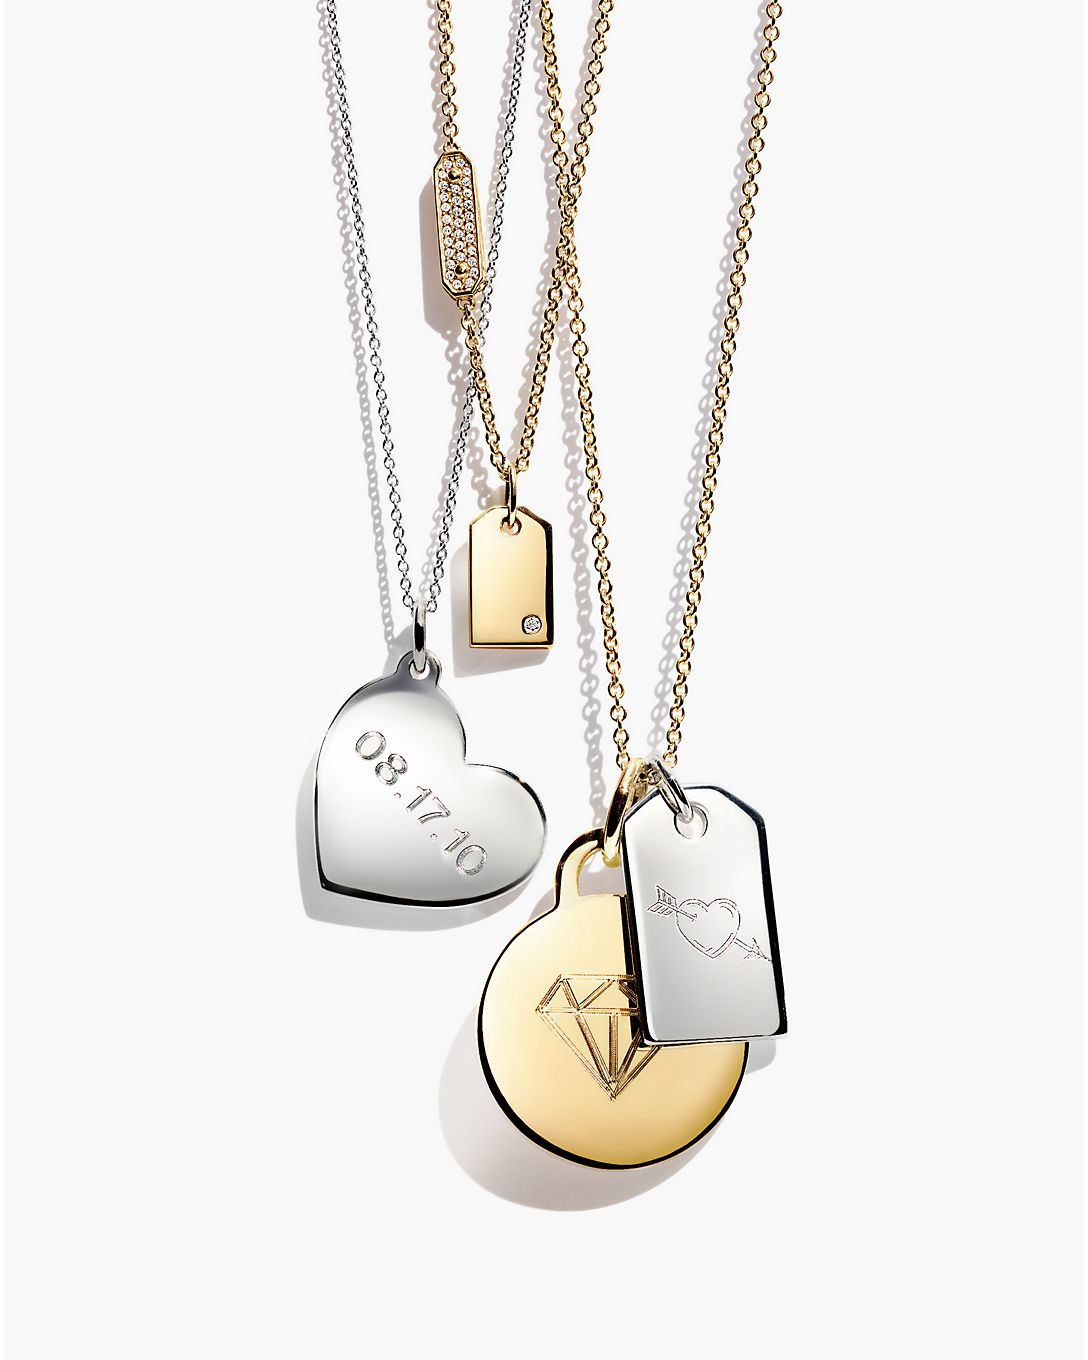 Personalized Tiffany & Co. Gifts